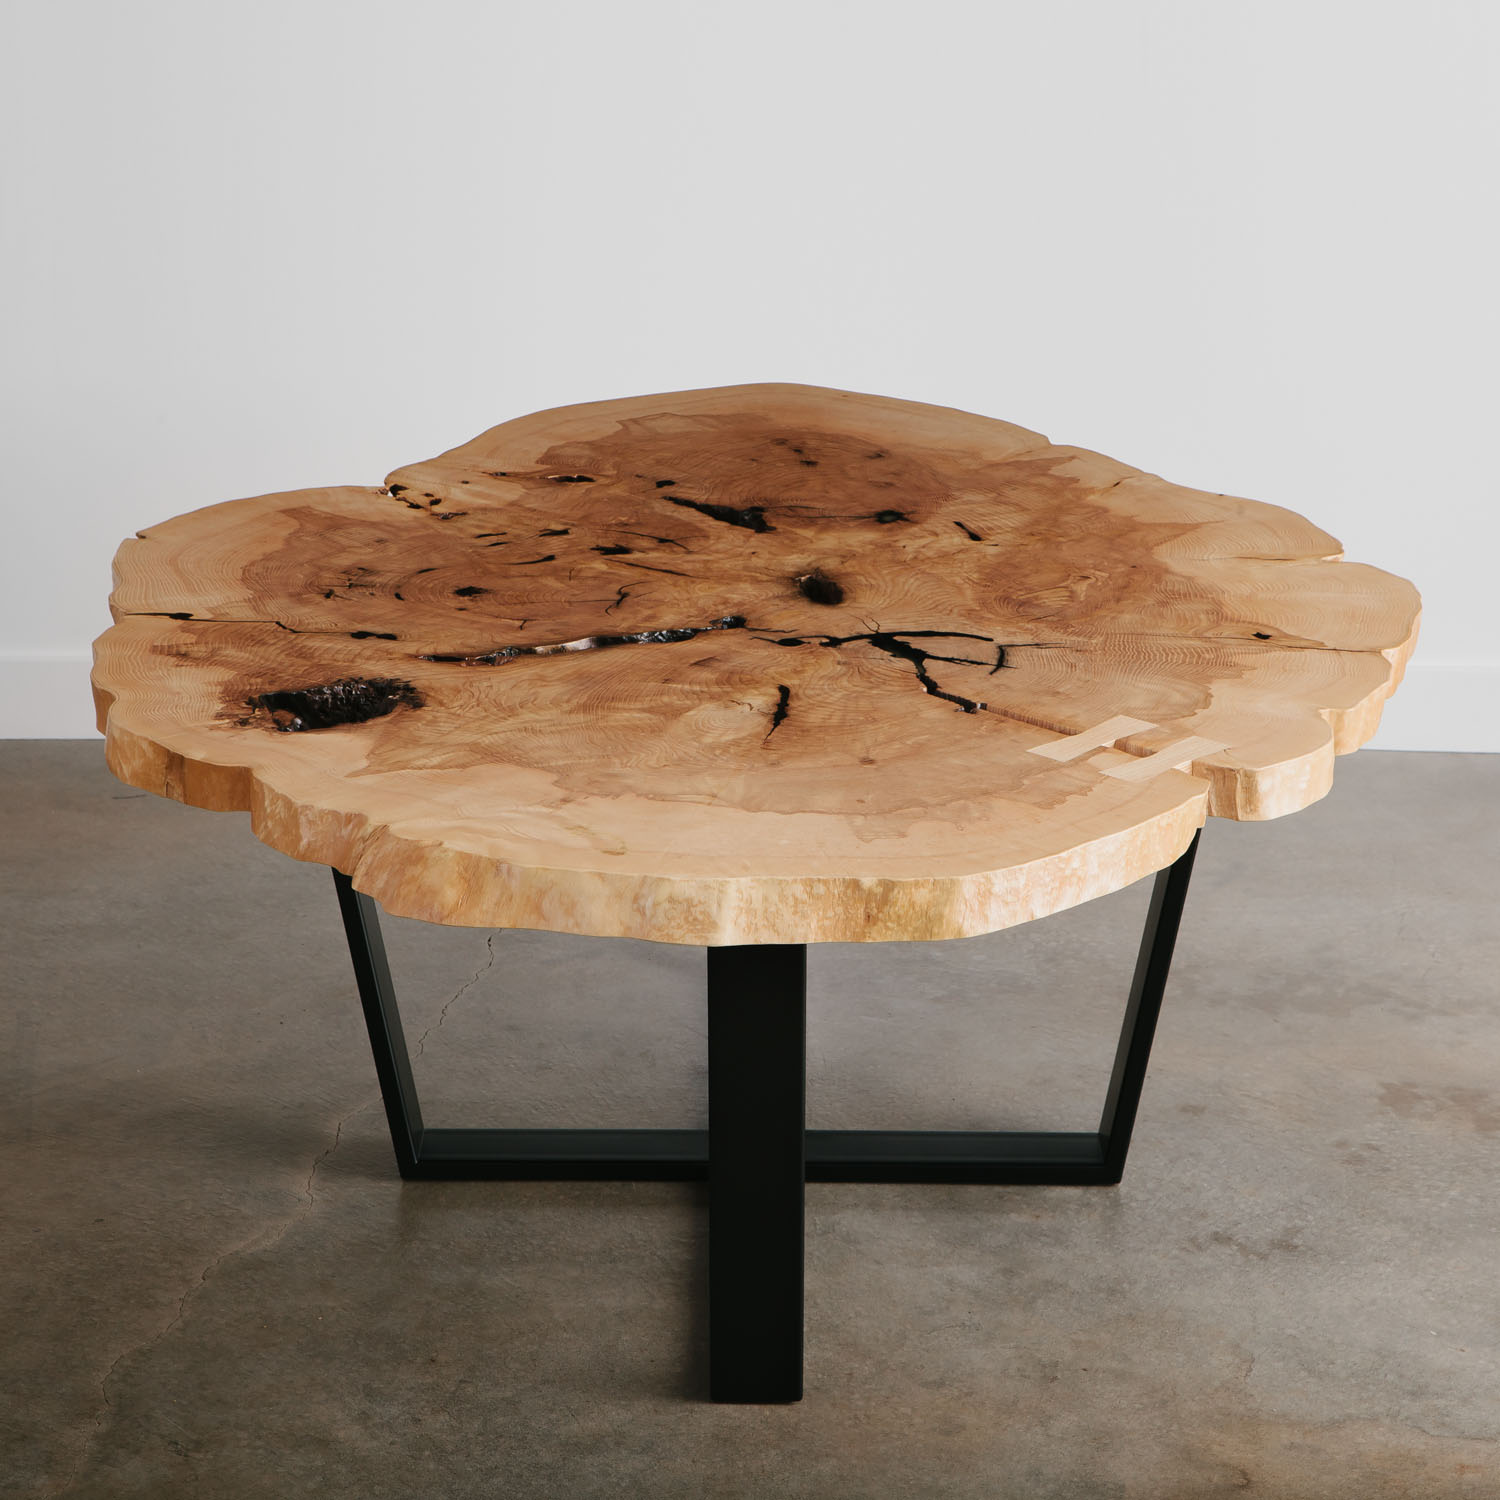 Cross cut slab ash table with natural tree character